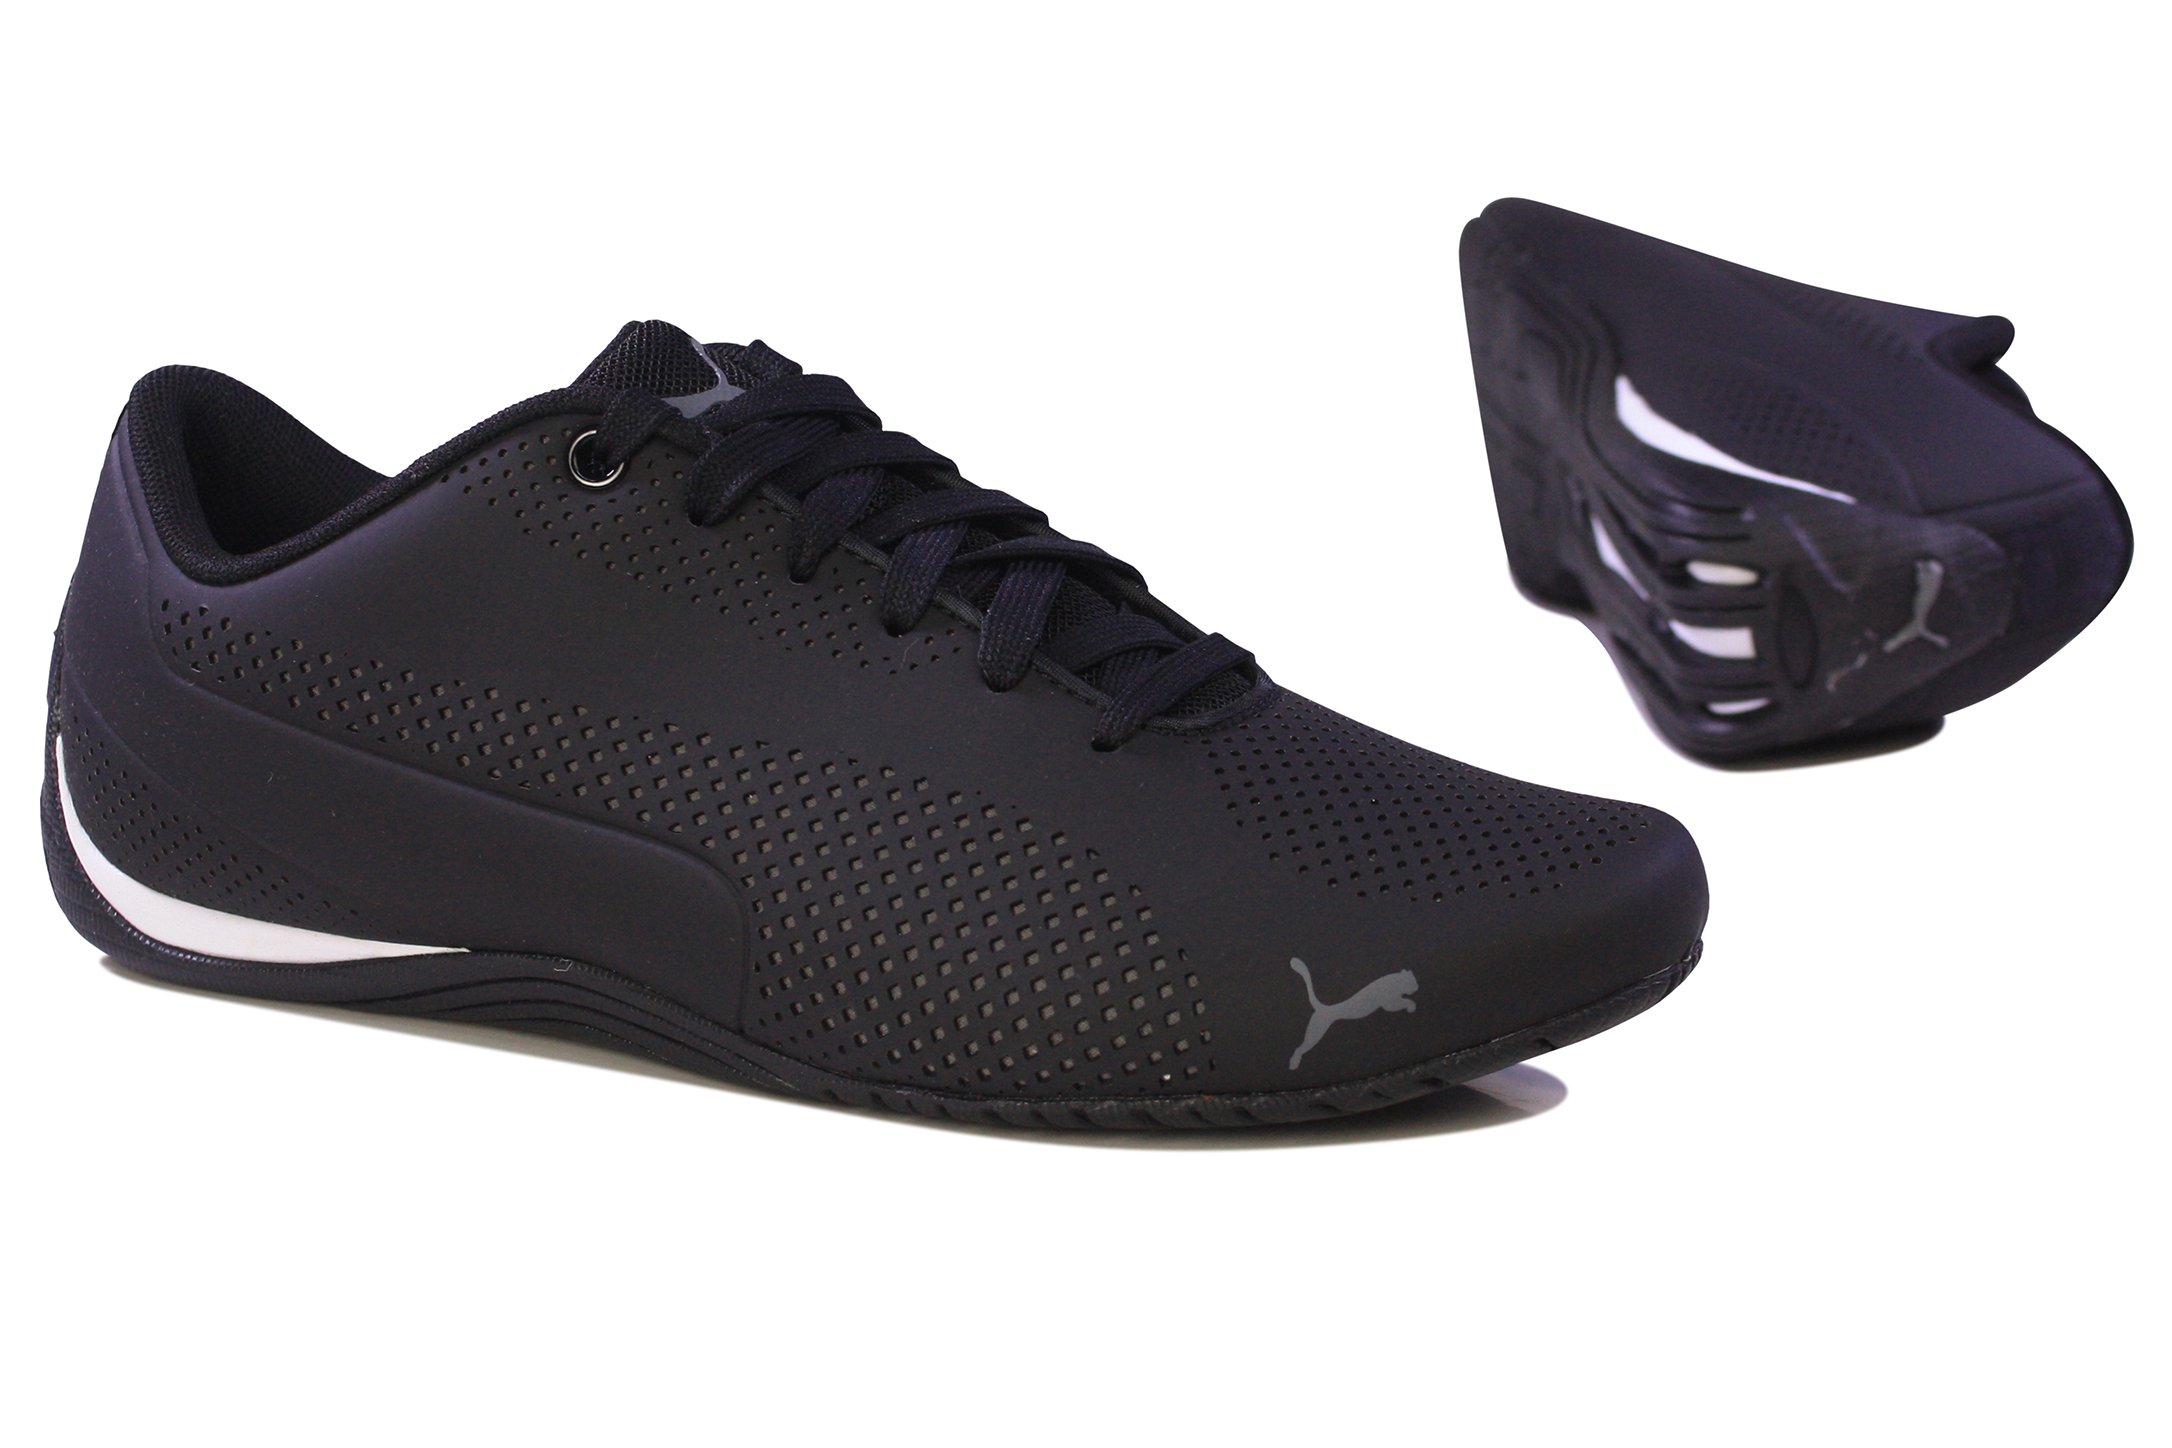 037c541dbb Branded Shoes for Men | Shoe Brands | Men's Shoe Centre